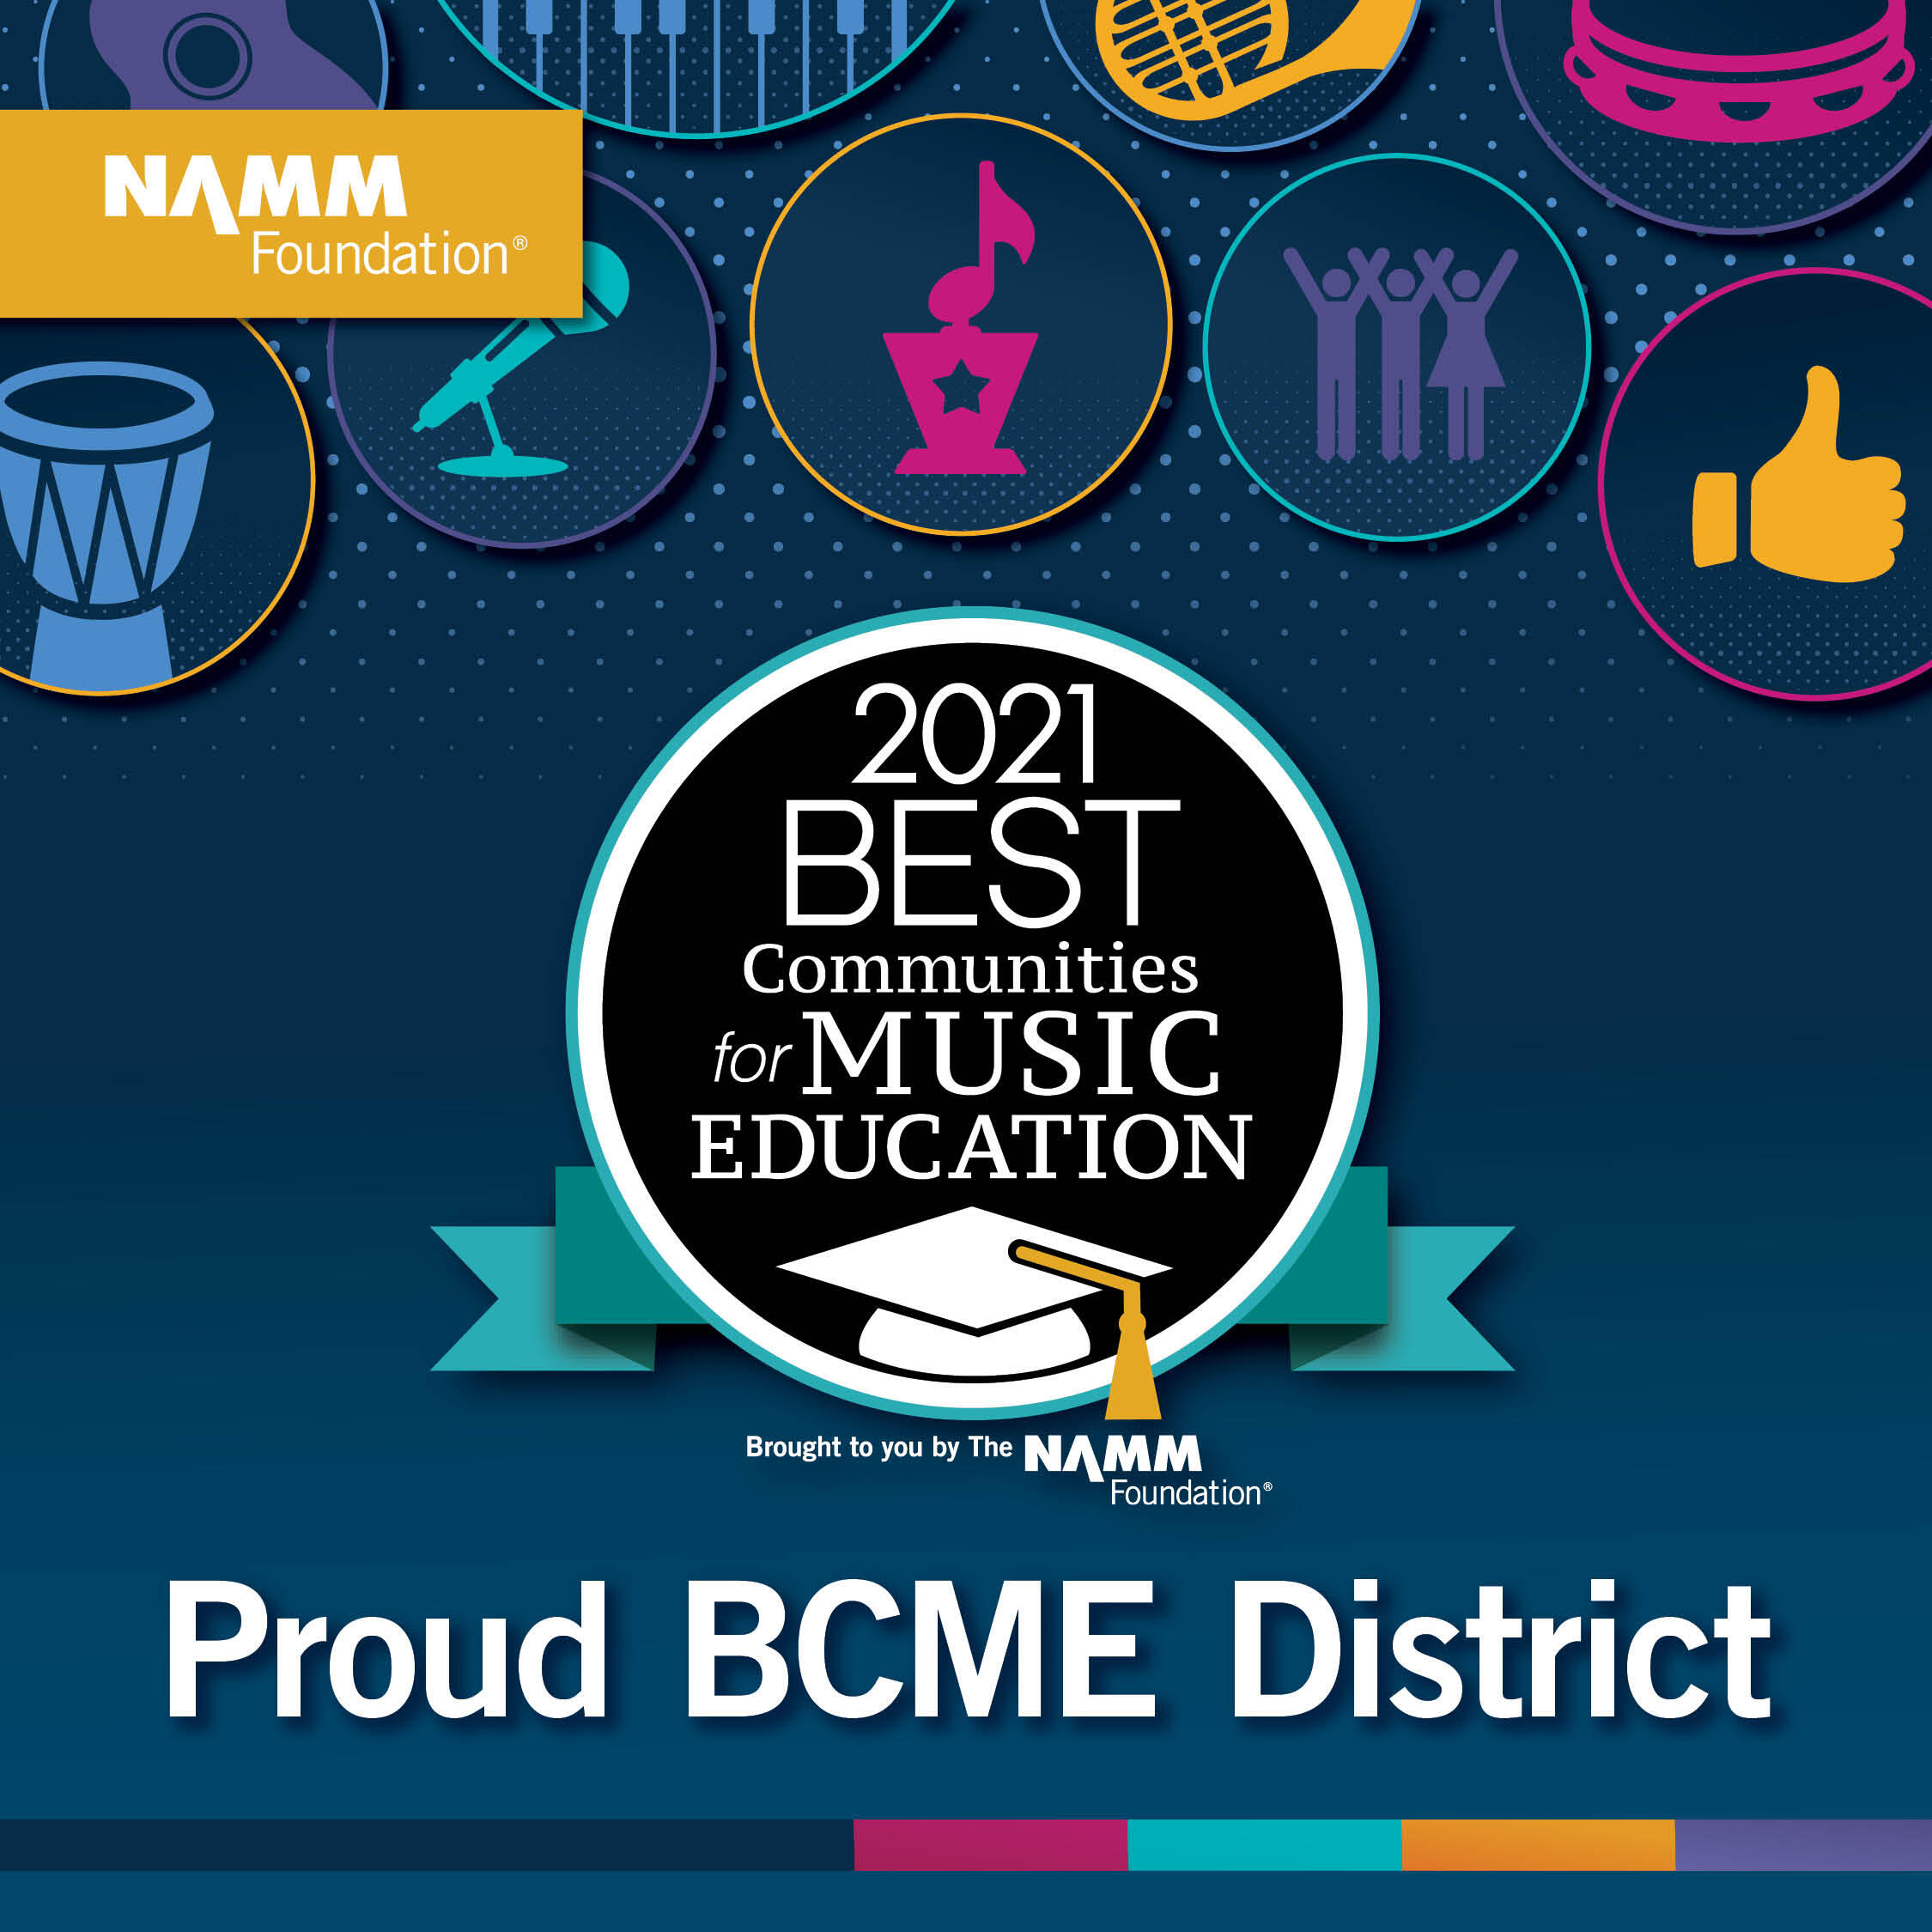 NAMM Best Communities for Music Education